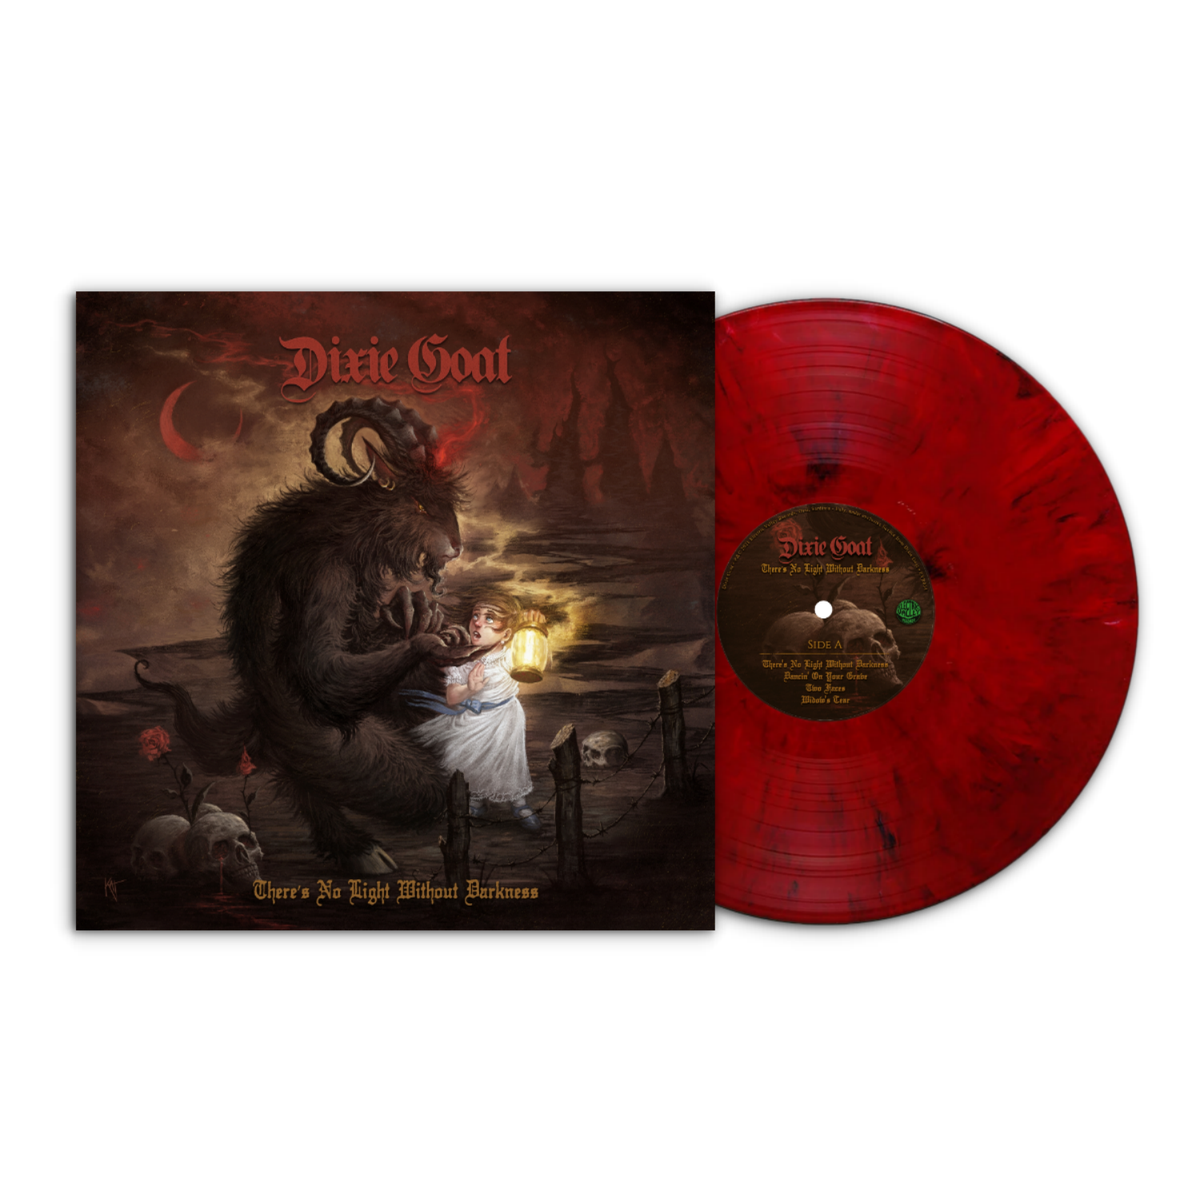 Image of Dixie Goat - There's No Light Without Darkness LTD Red Marbled Vinyl